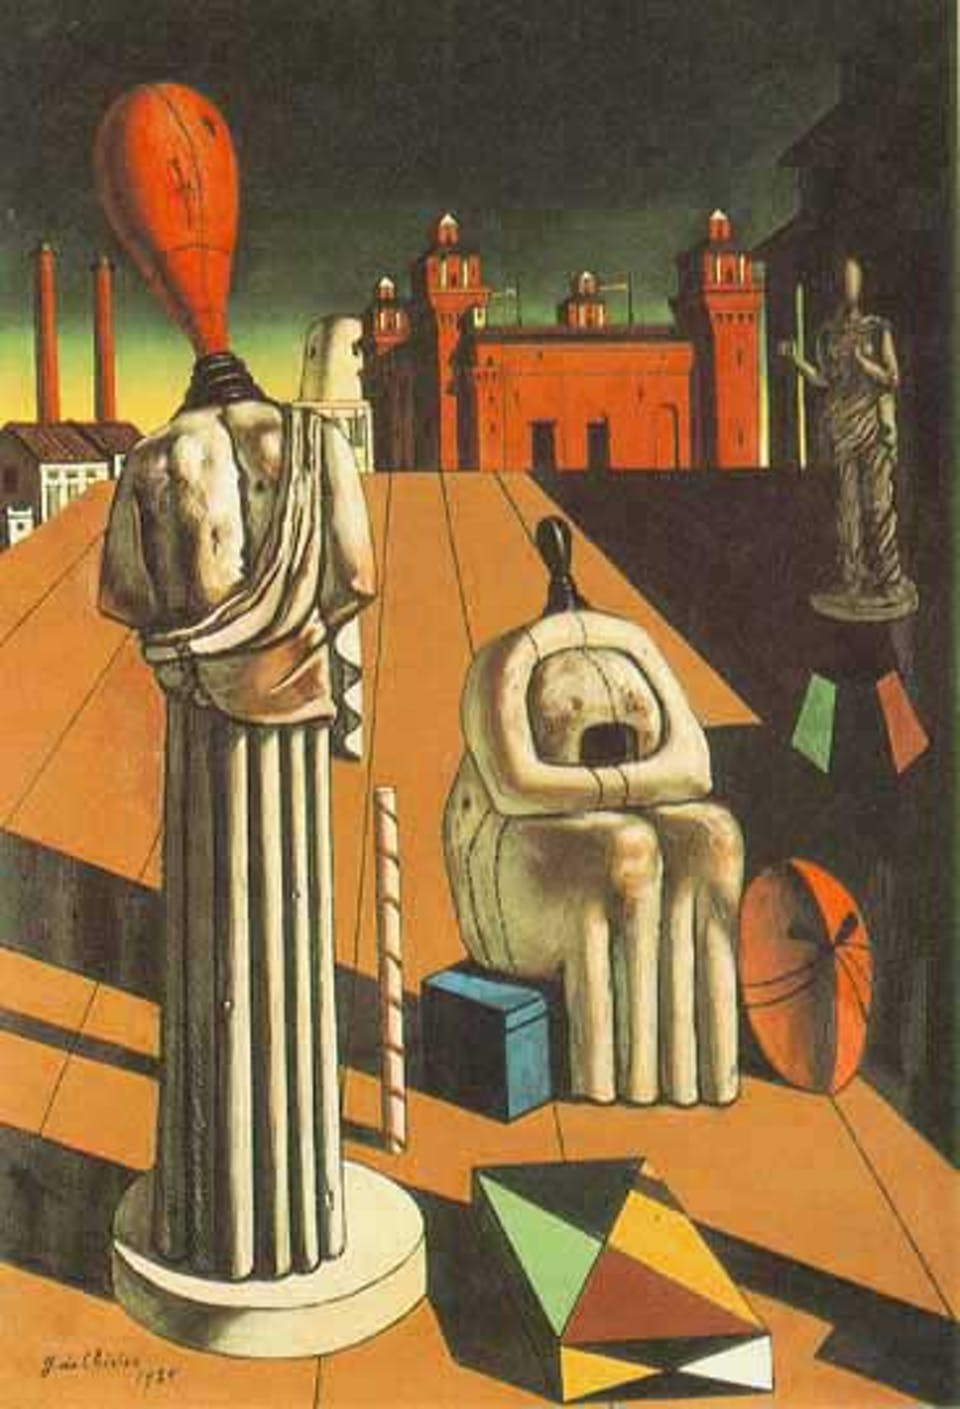 The_Disquieting_Muses de chirico